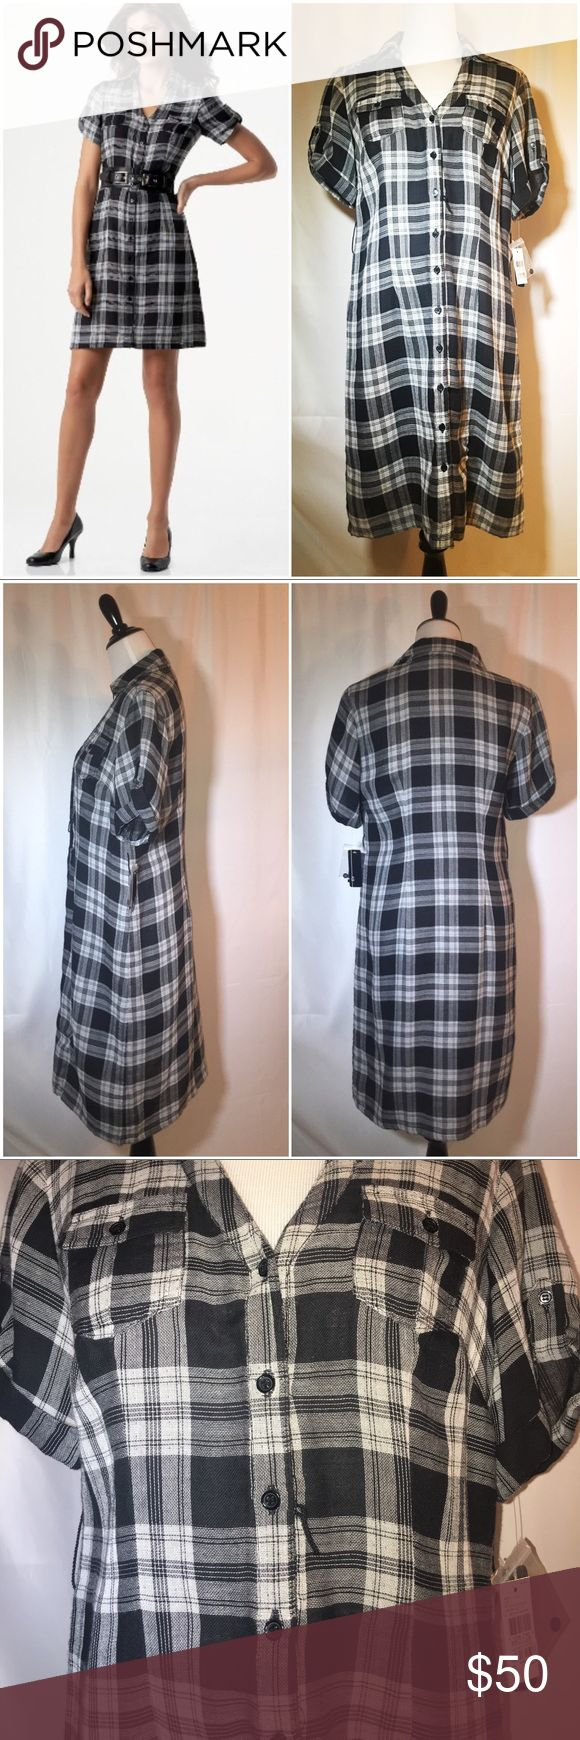 AGB Belted Plaid Shirtdress Brand New AGB Plaid Shirtdress from Macy's. Does not include a belt, but has the string loops for one of your choosing. Excellent condition. Classic and trendy.  Reasonable offers accepted. 20% off bundles! AGB Dresses Midi